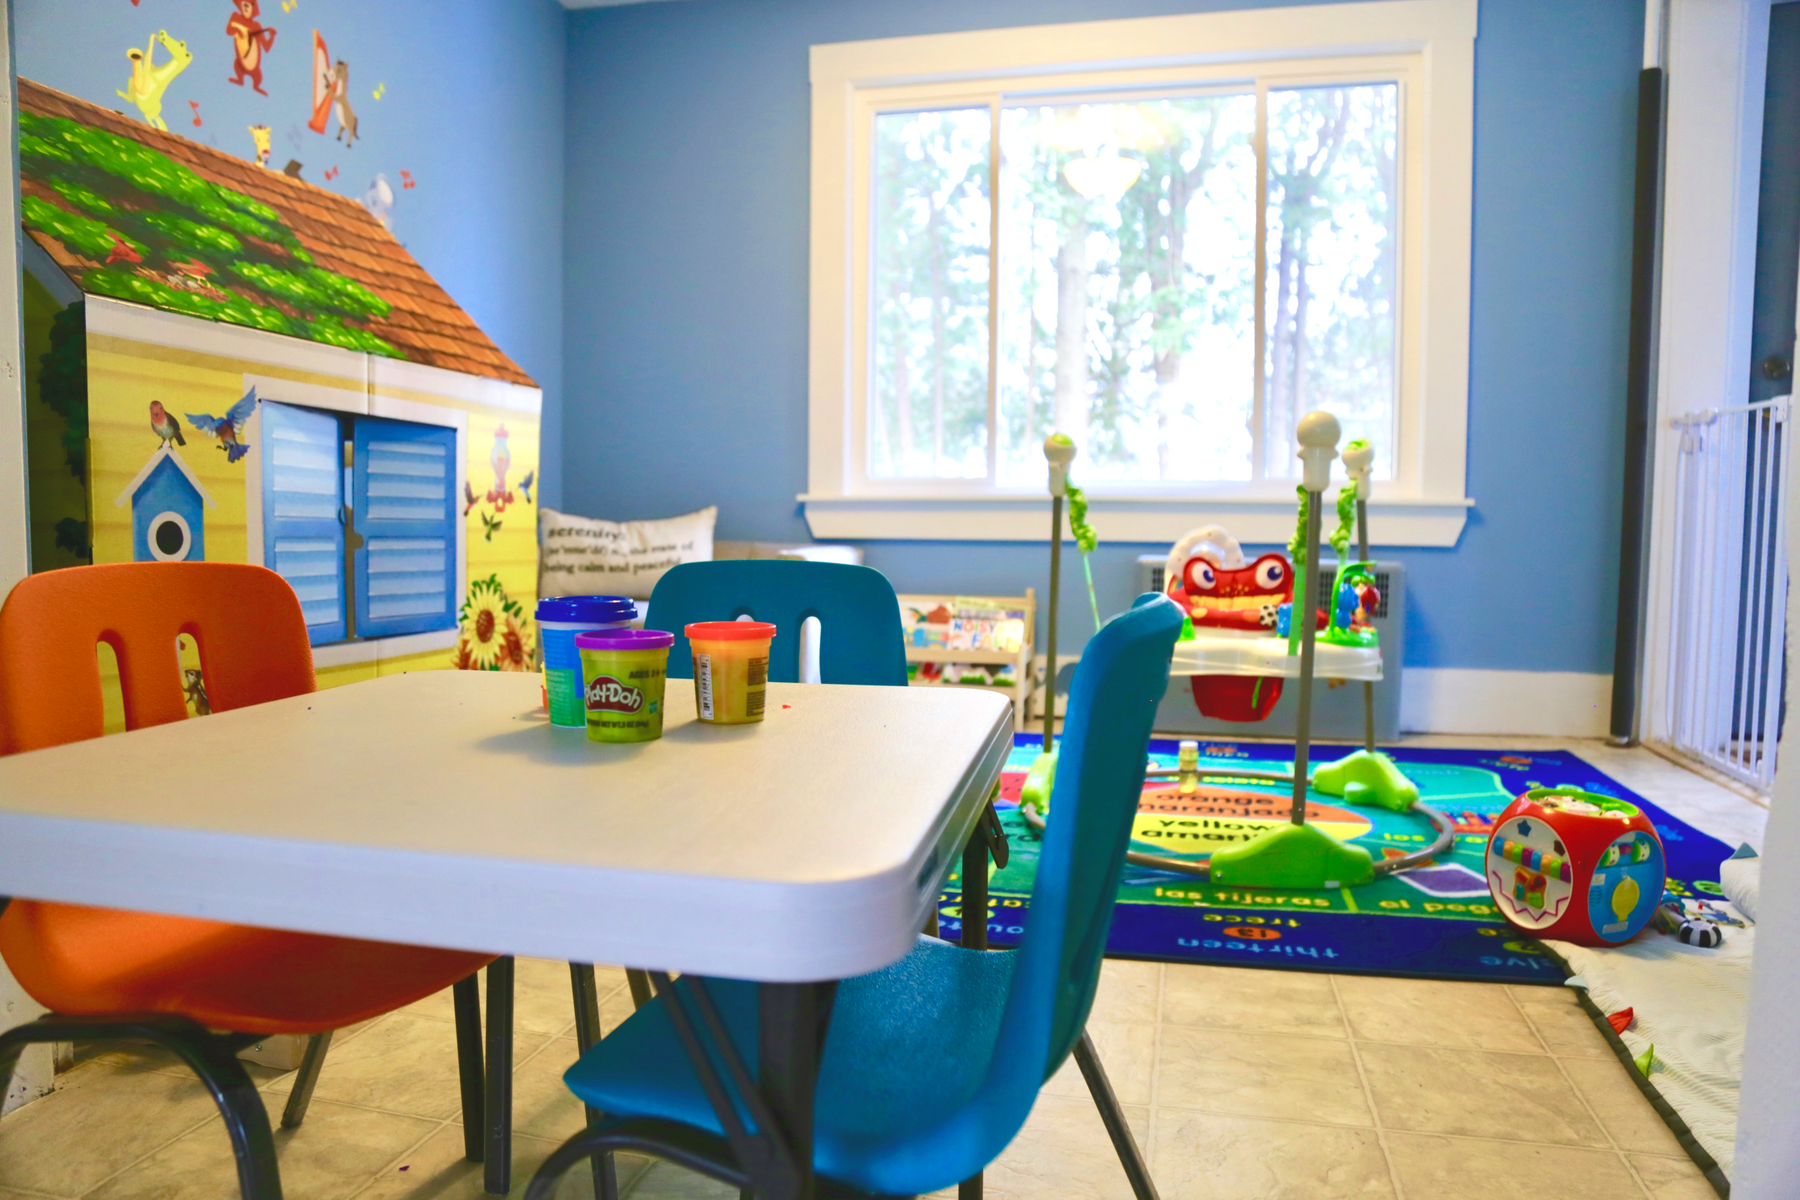 Home daycare in Dedham, MA